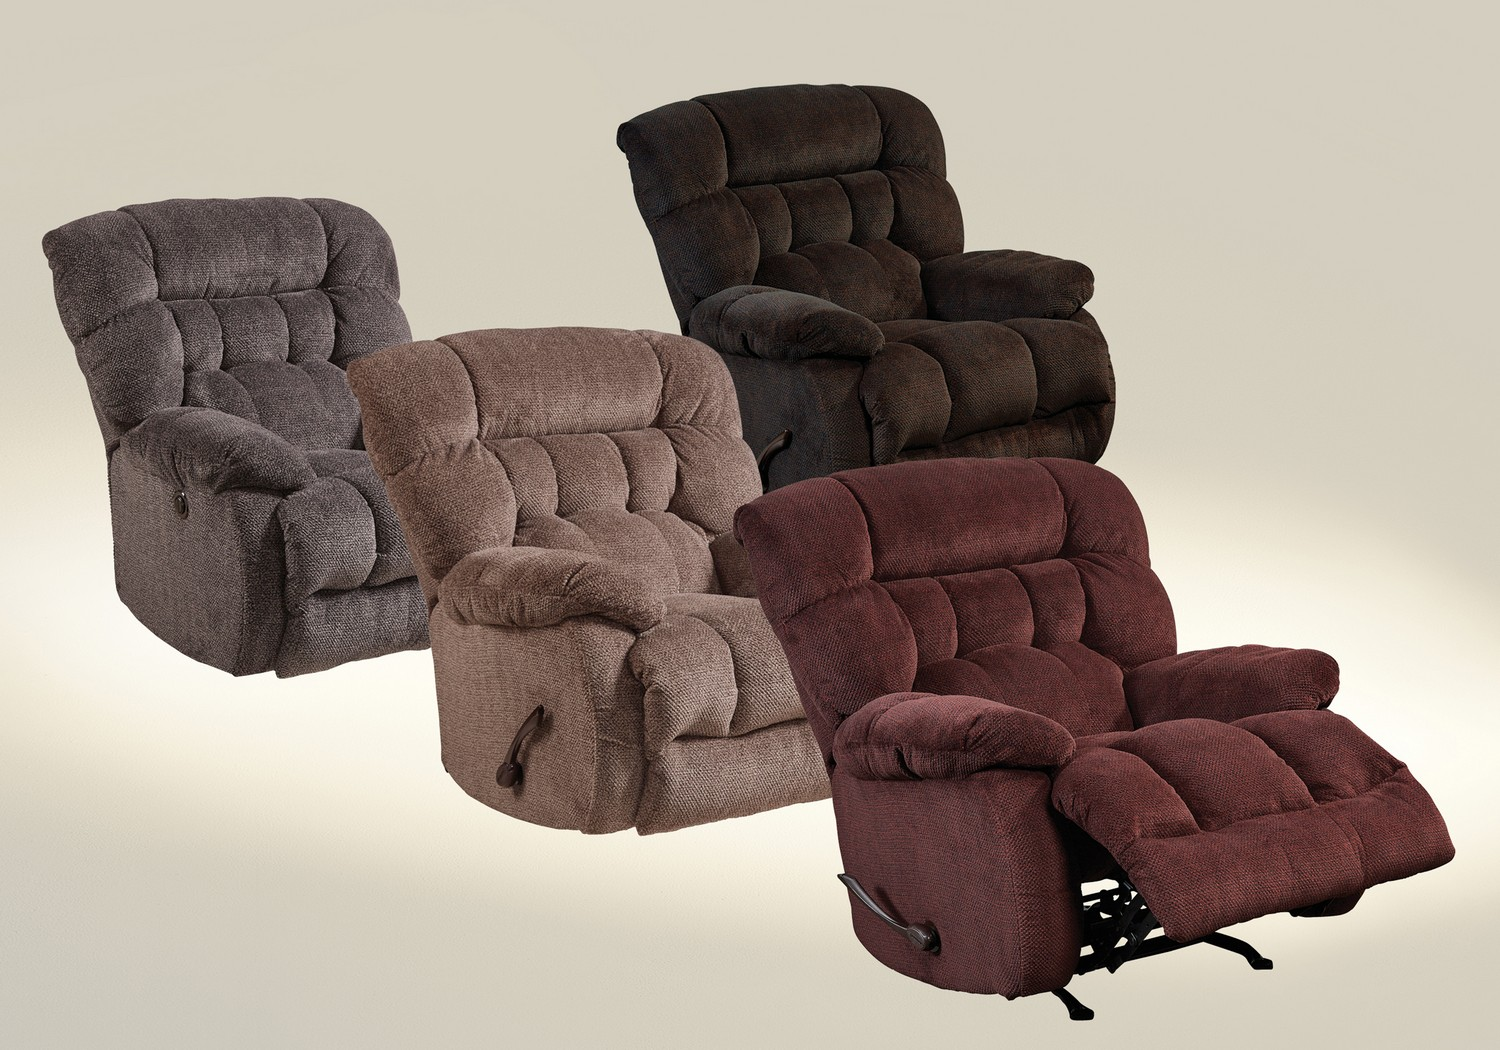 CatNapper Daly Chaise Swivel Glider Recliner - Cobblestone & CatNapper Daly Chaise Swivel Glider Recliner - Cobblestone CN-4765 ... islam-shia.org